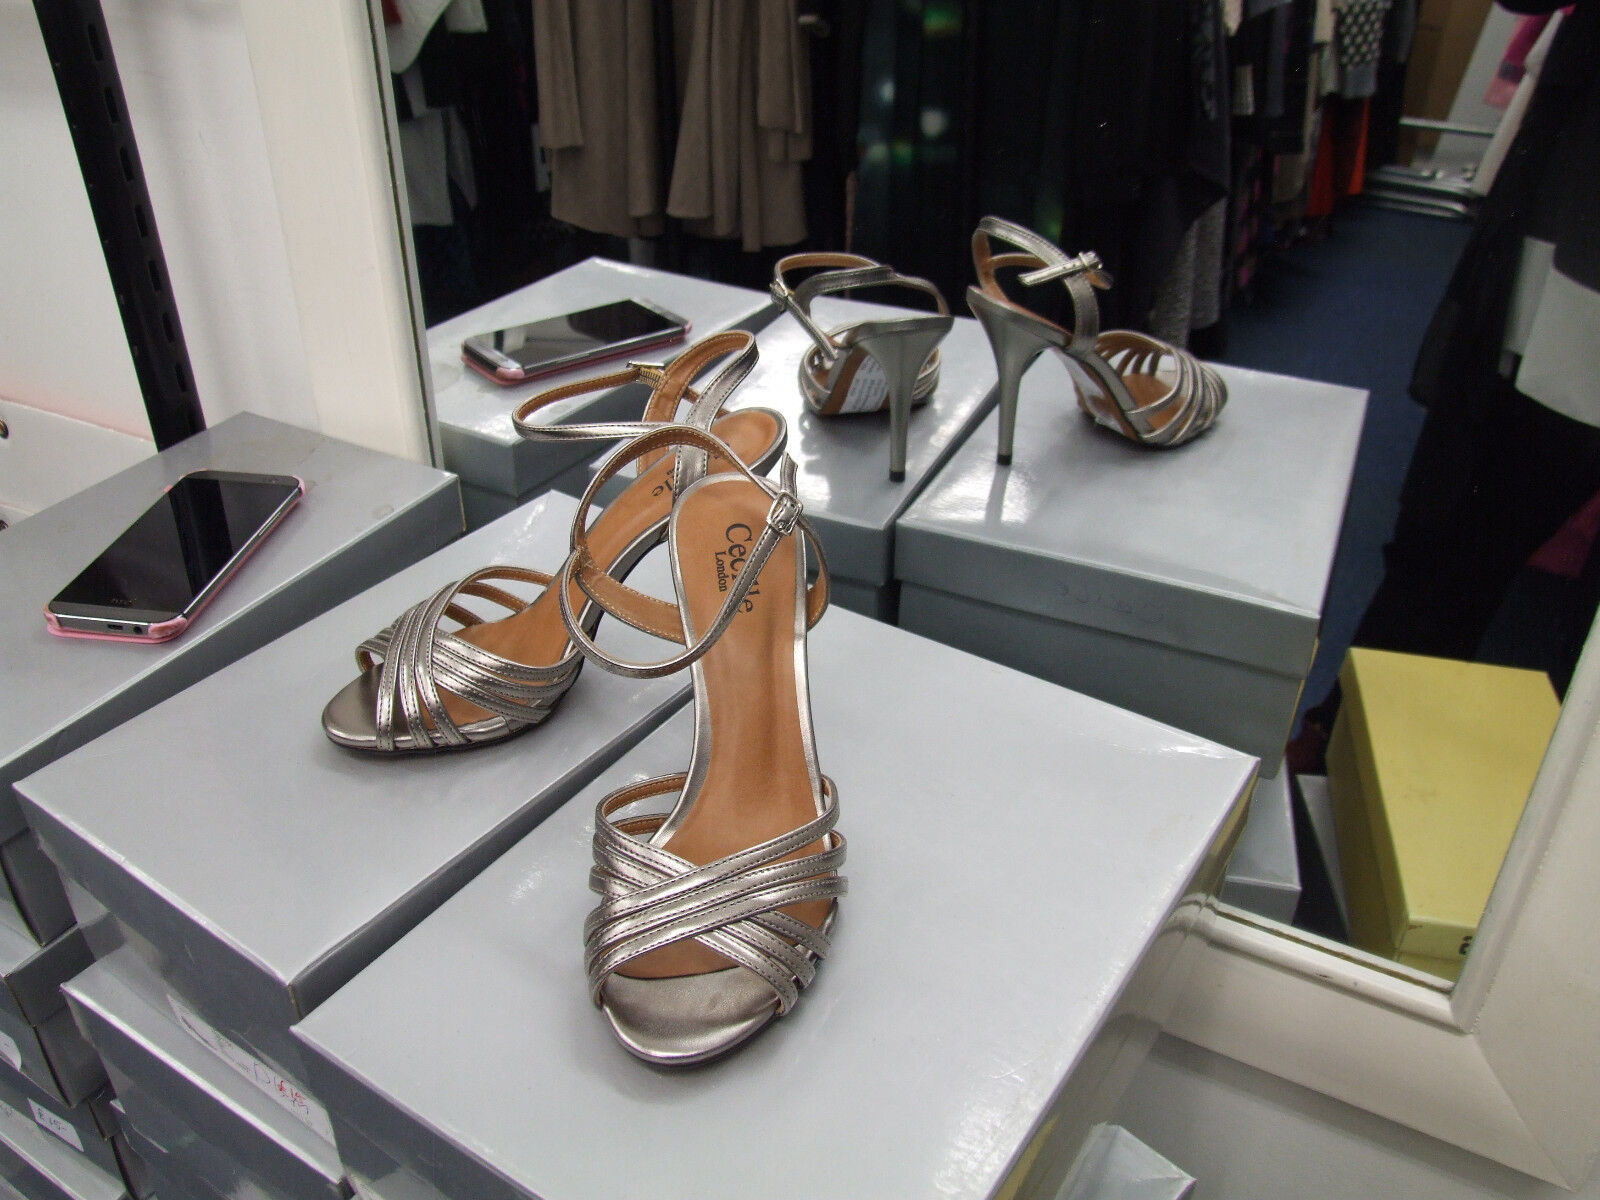 Cecille London BNIB UK 4 Divine Strappy High Heel Pewter Eve Strappy Divine Sandals Shoes EU 37 3cdef7